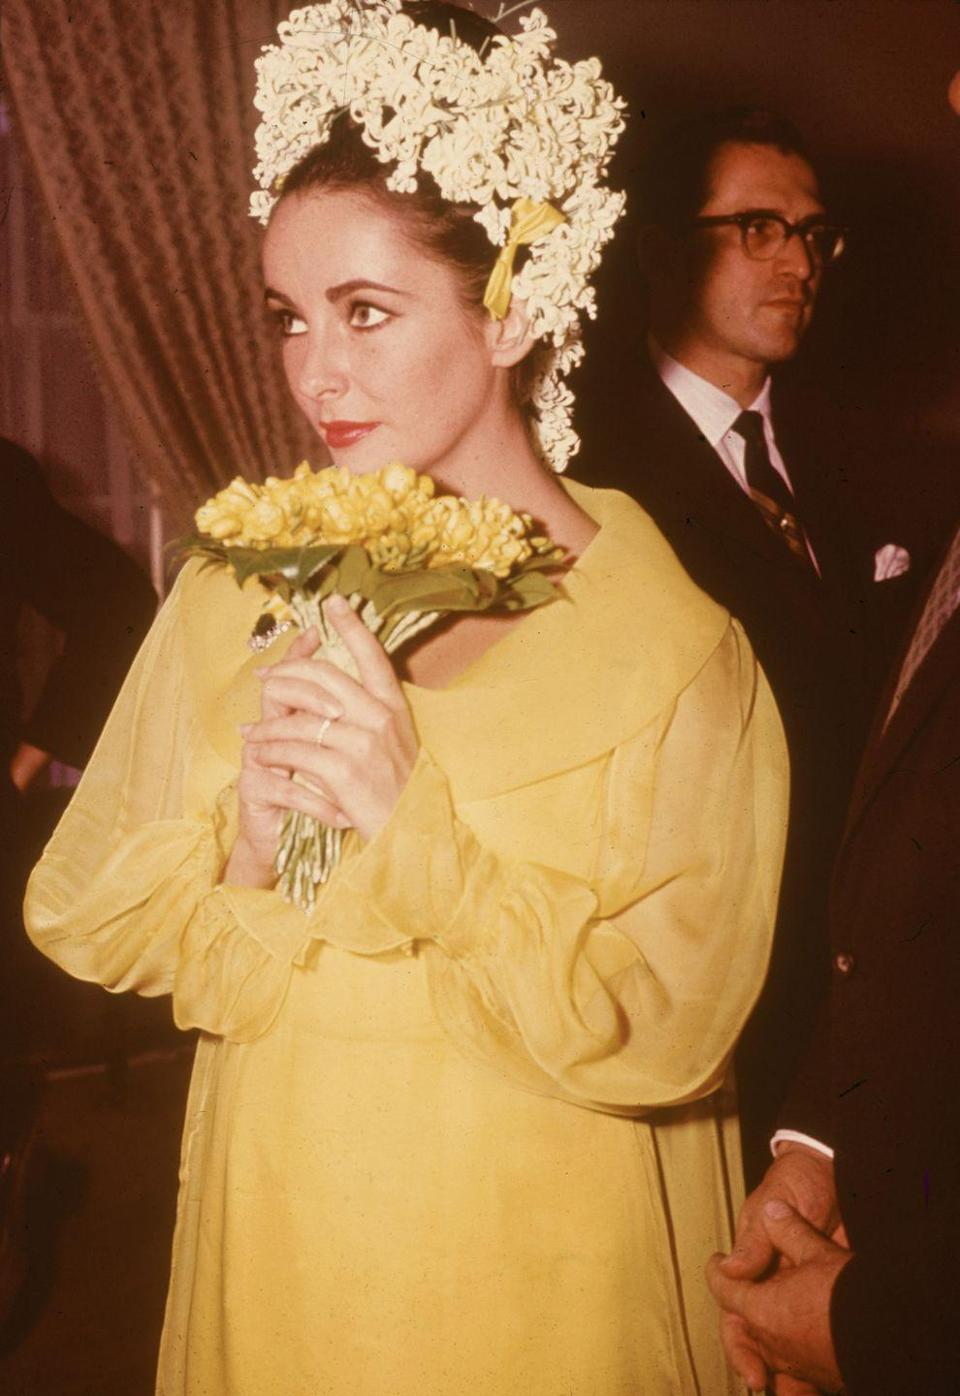 <p>For her wedding to fifth husband Richard Burton, Taylor opted for a canary yellow chiffon dress topped off with dozens of white flowers in her hair. While her penchant for getting married certainly made the news more than her gowns, this was her brightest dress to date.</p>